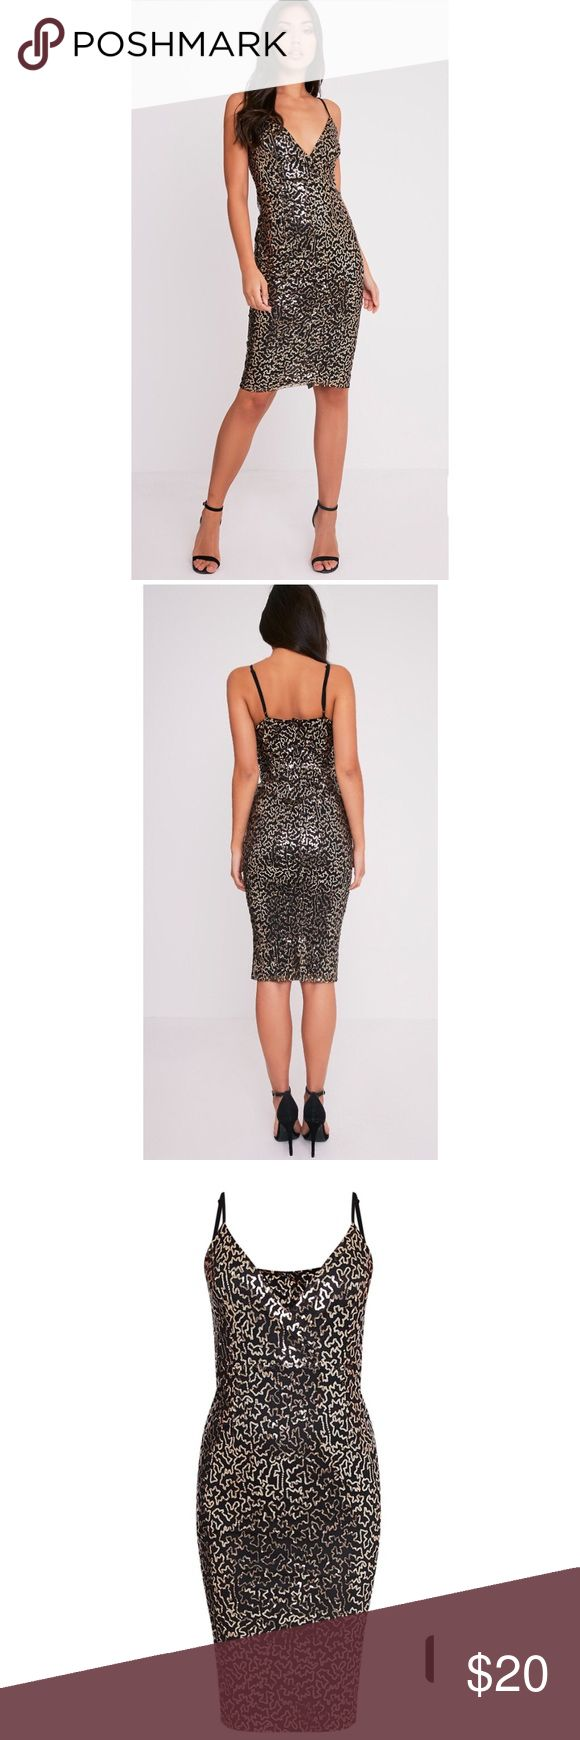 Sequin Midi Dress Midi fit dress with fab gold sequin detailing pretty little things Dresses Midi